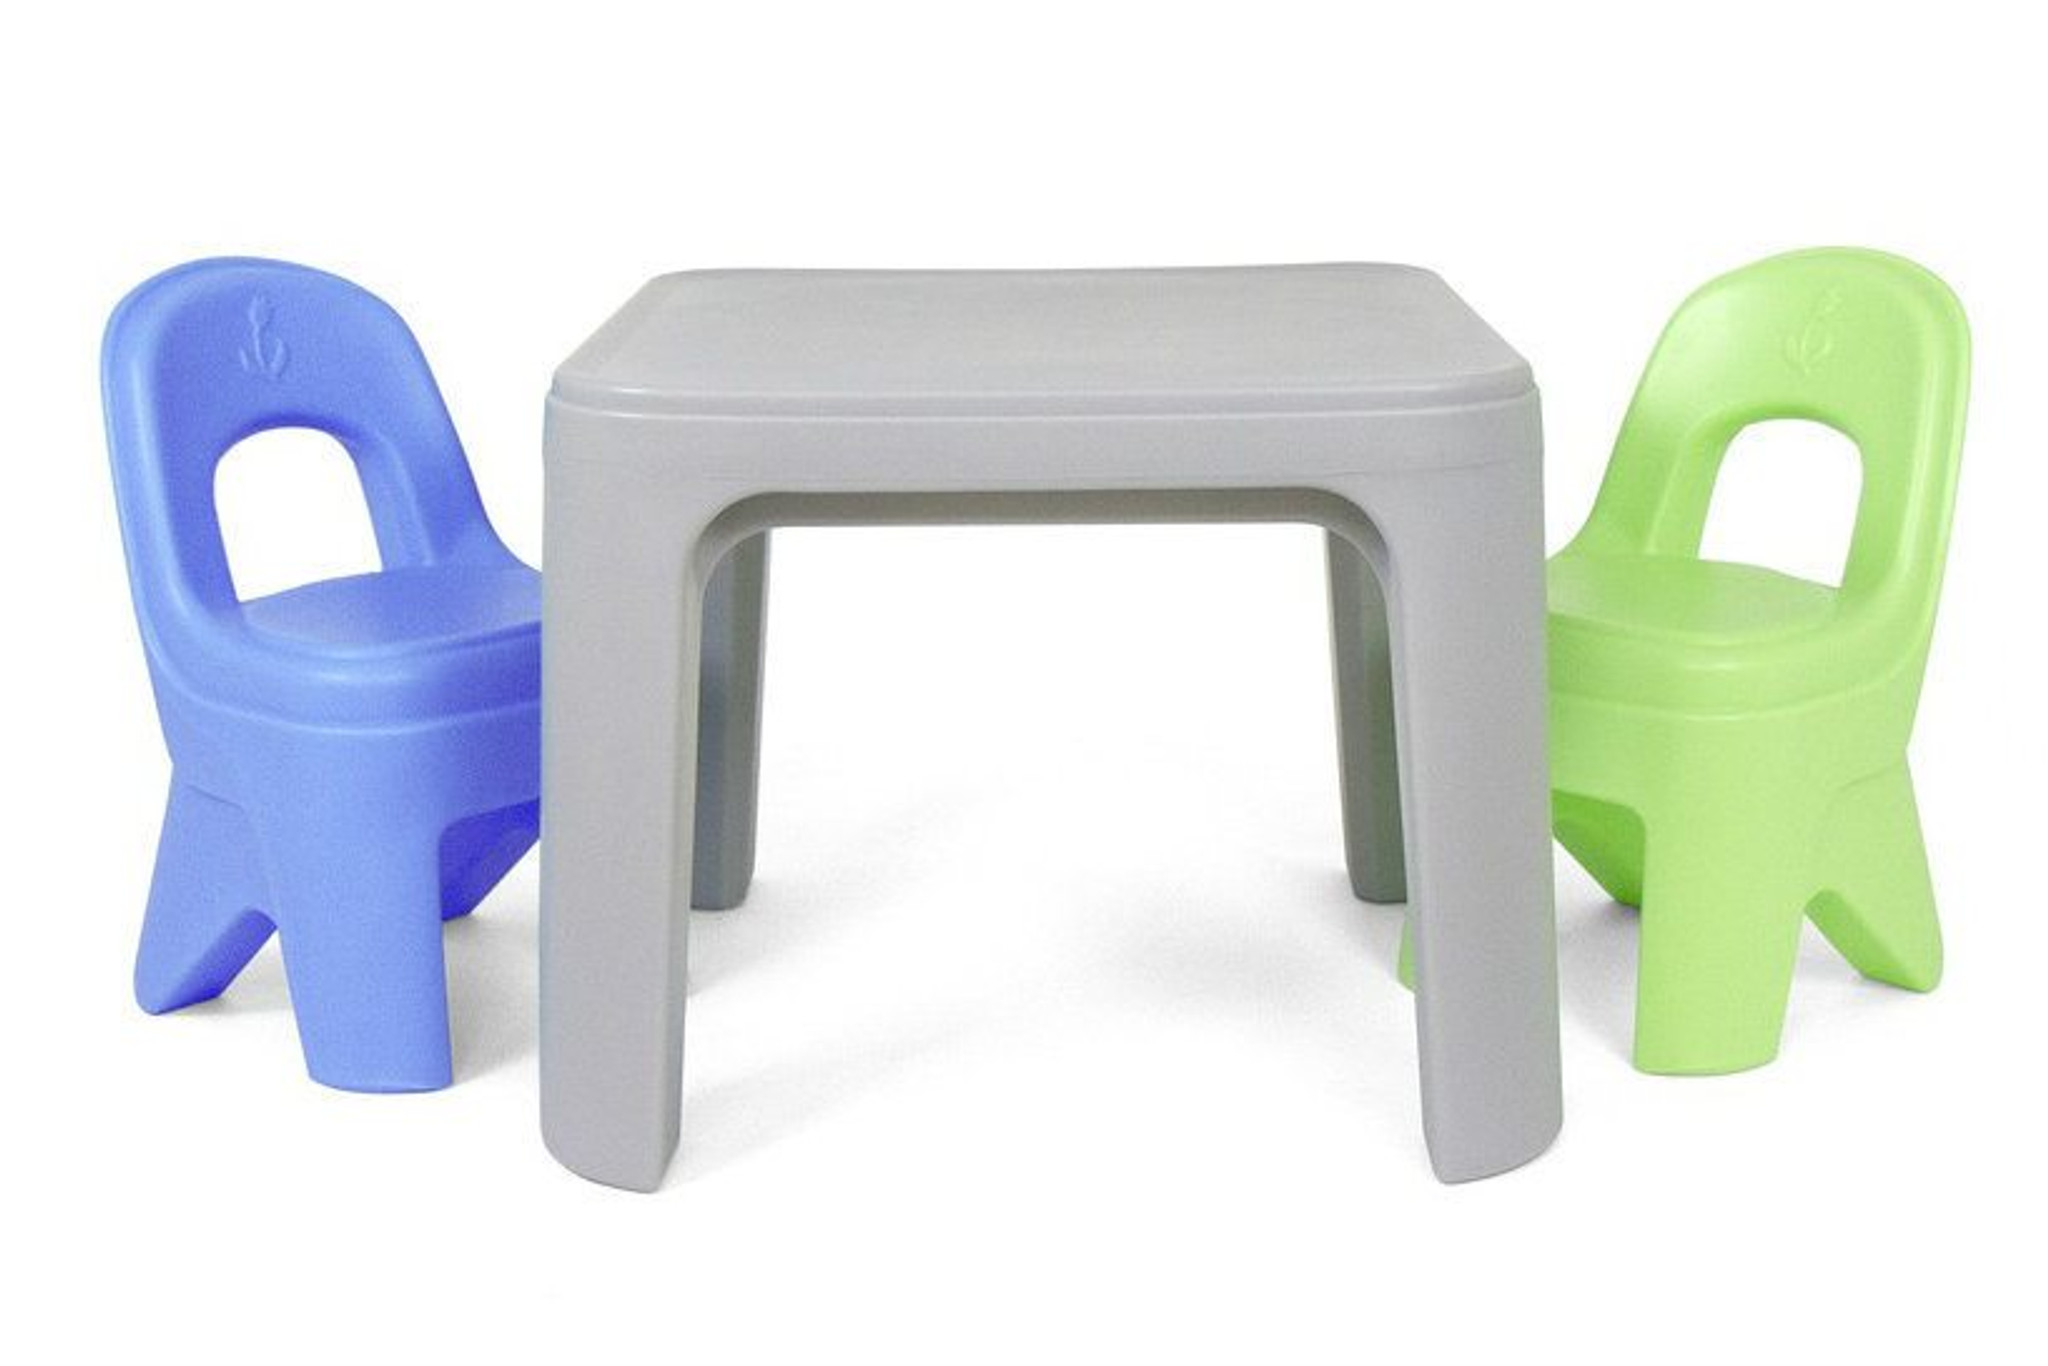 table with chairs folding chair uke chords play around set kids and simplay3 includes a sturdy compact one piece